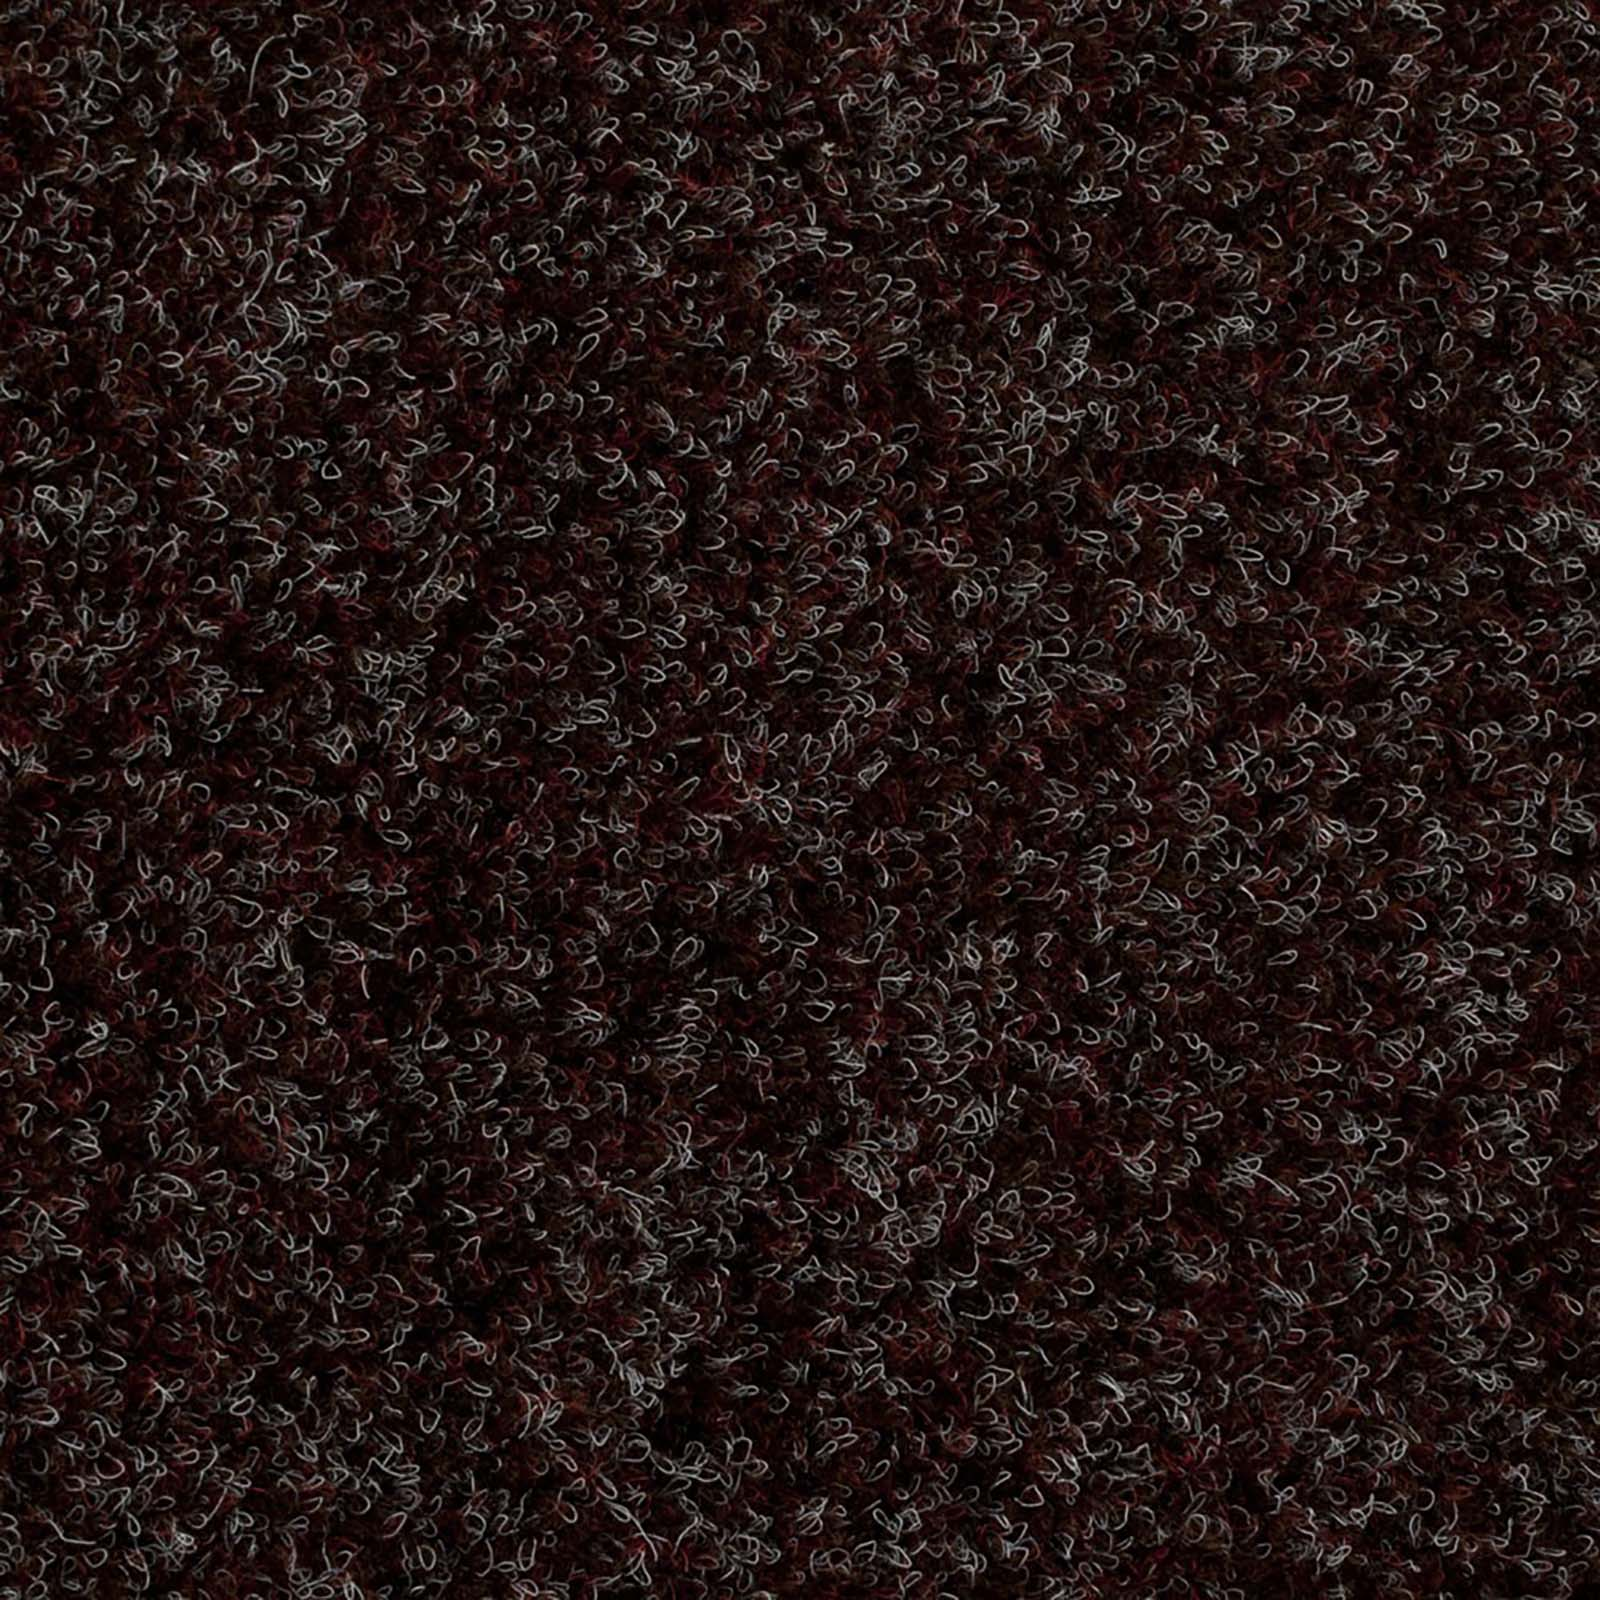 Dark Brown Outdoor Carpet - Far